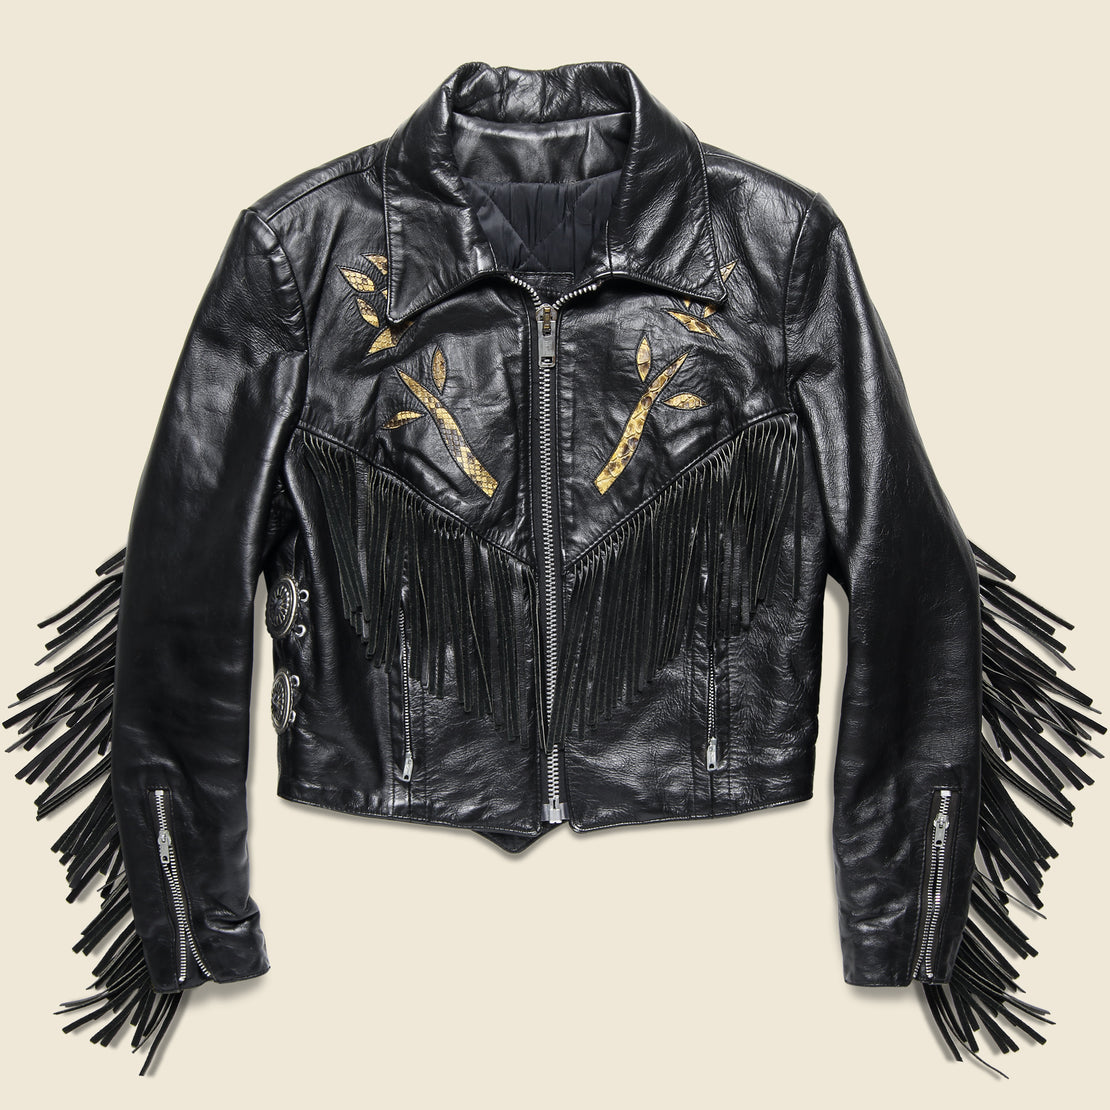 Vintage Leather Rider Concho & Tassle Biker Jacket - Black